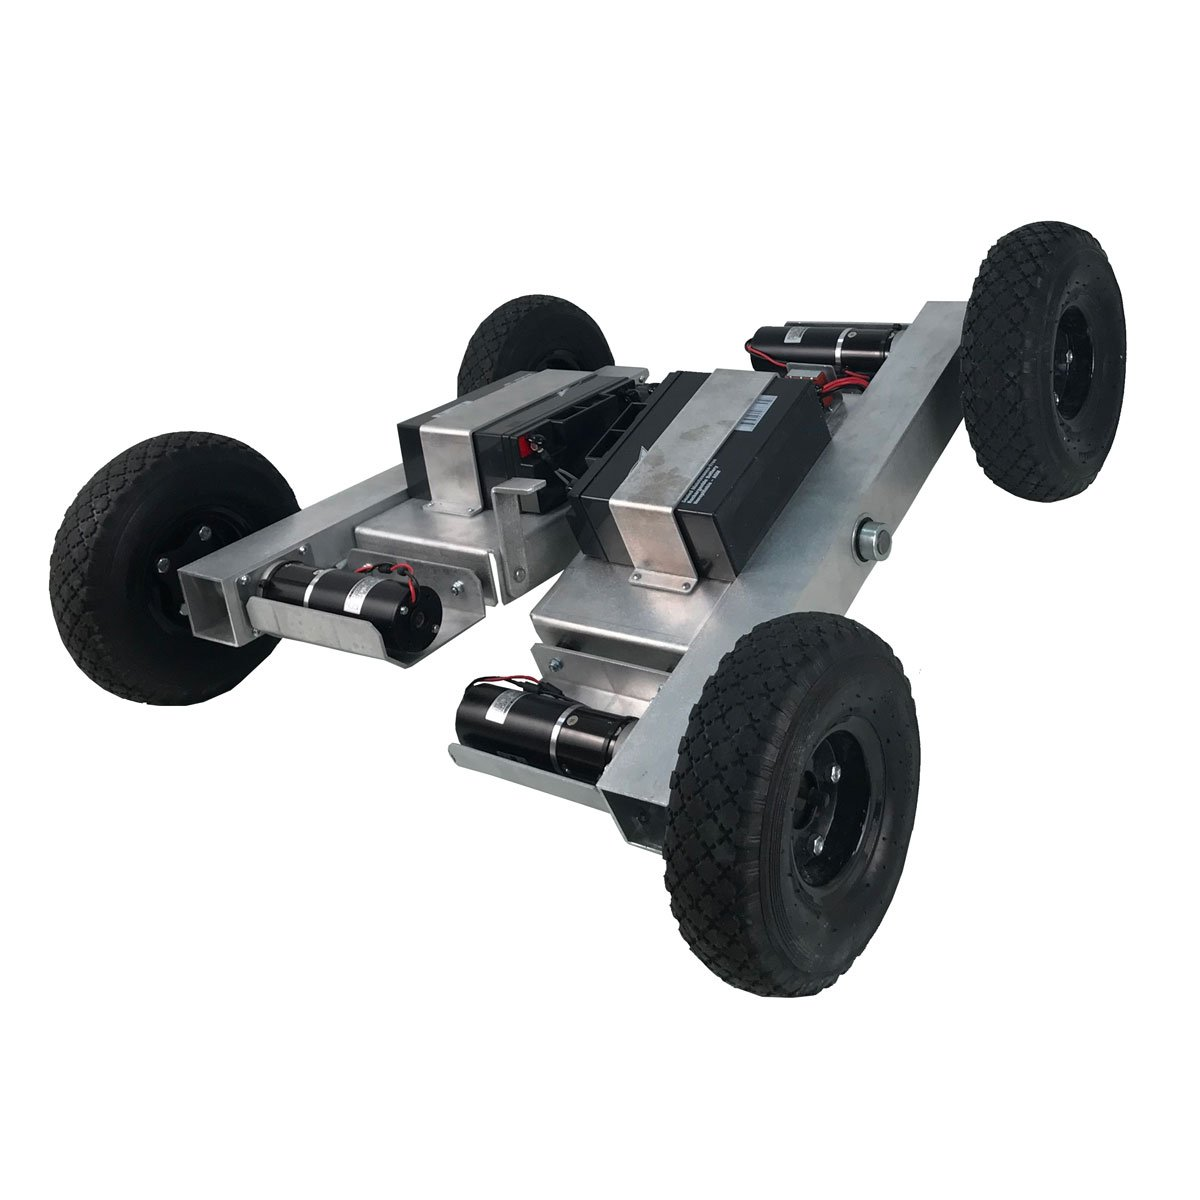 NEW 4WD IG-52 Robot with NEW Center Pivot Chassis at